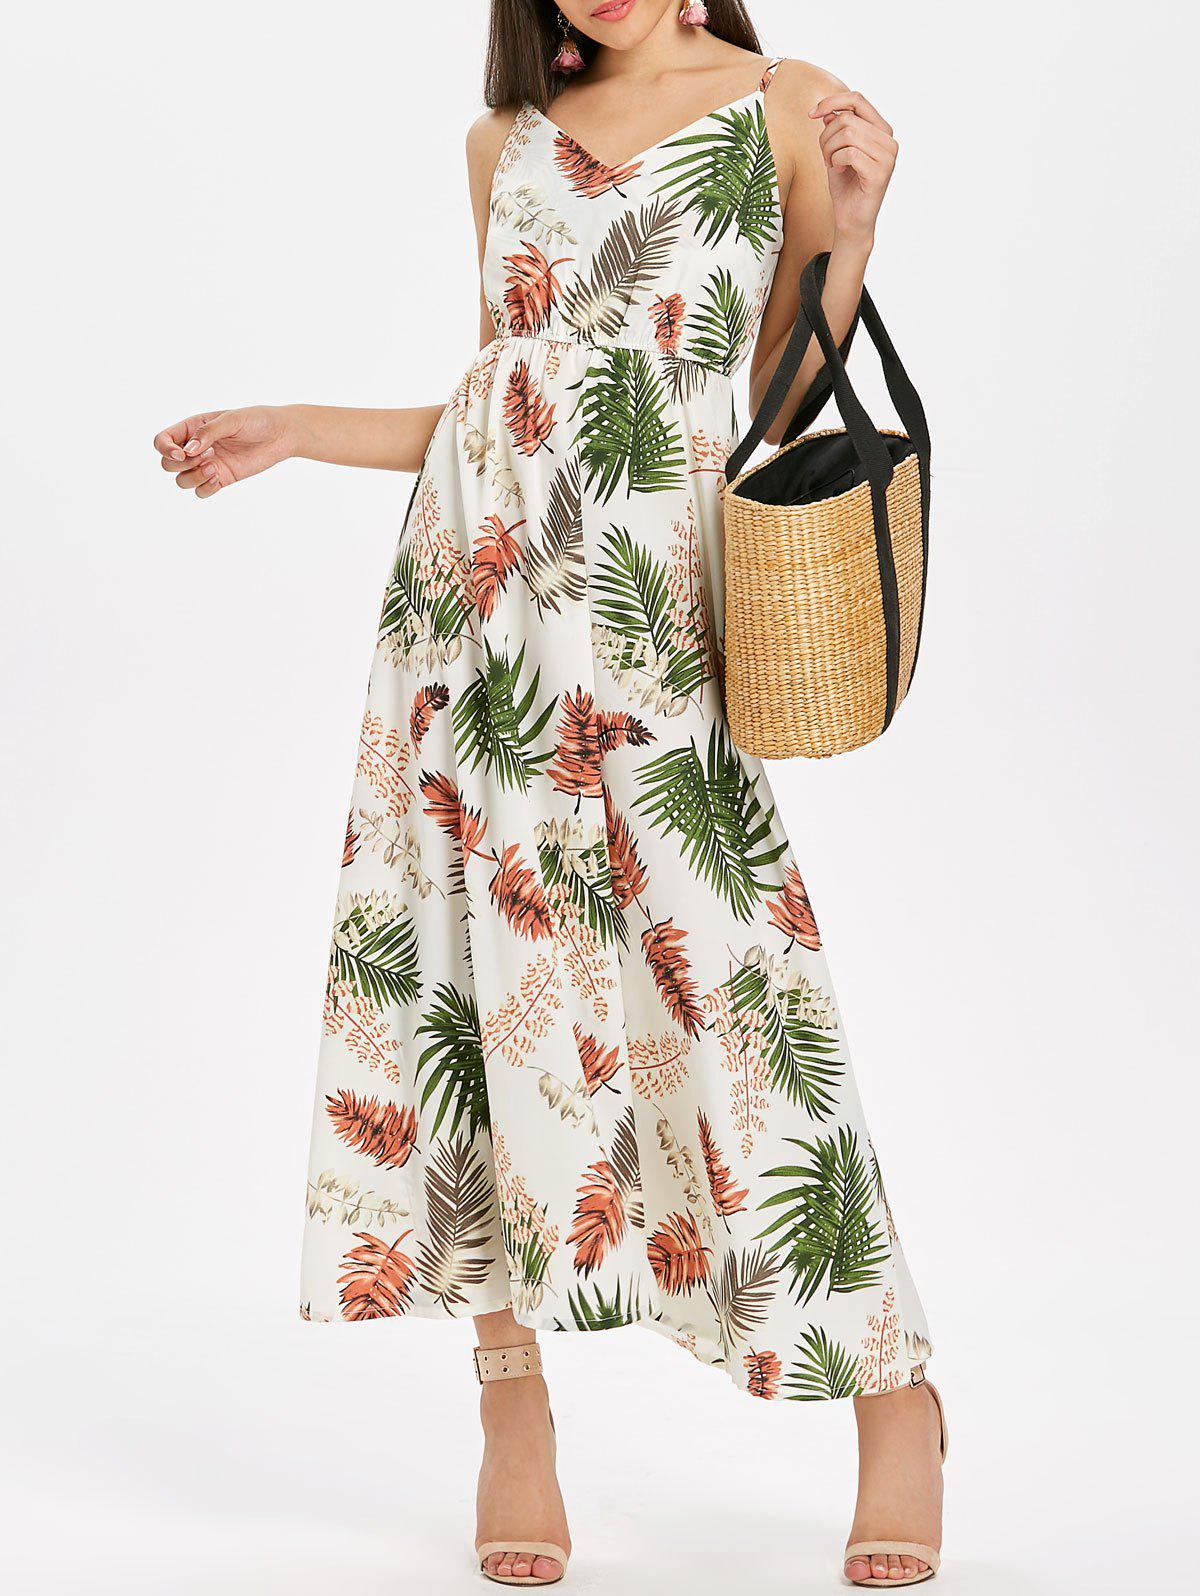 Spaghetti Strap Leaf Print Maxi Dress - multicolor 2XL